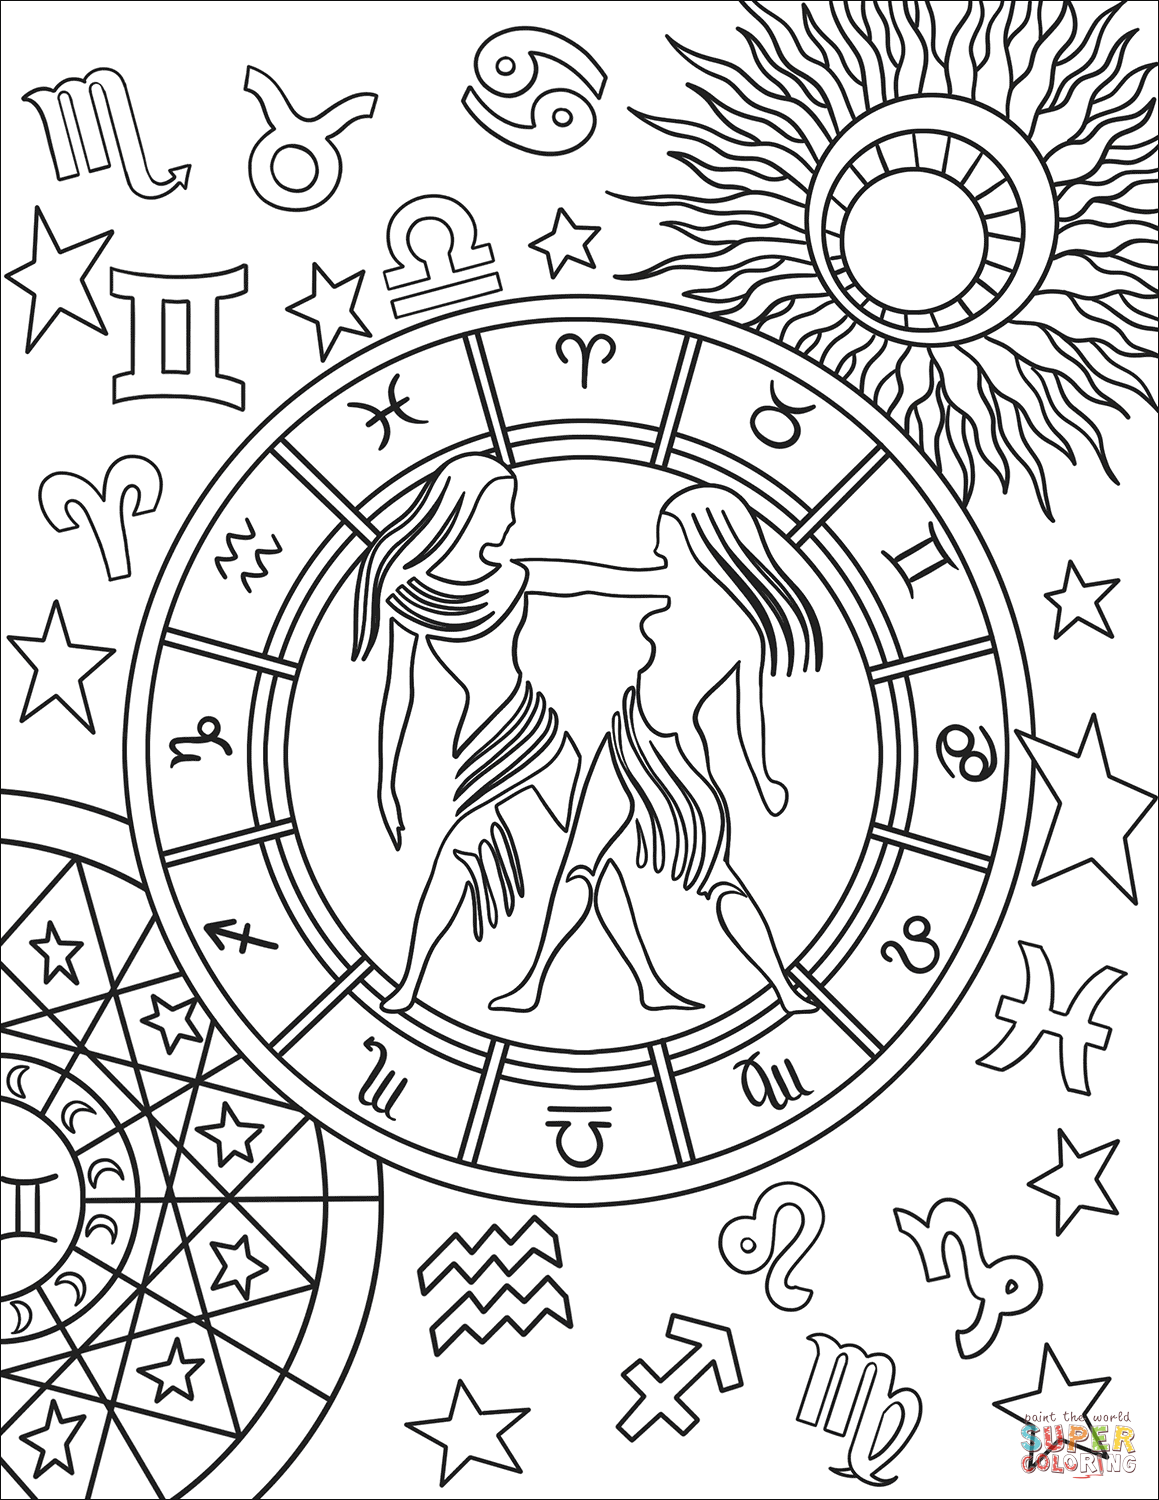 zodiac coloring pages 20 zodiac mandala coloring pages printable coloring pages pages coloring zodiac